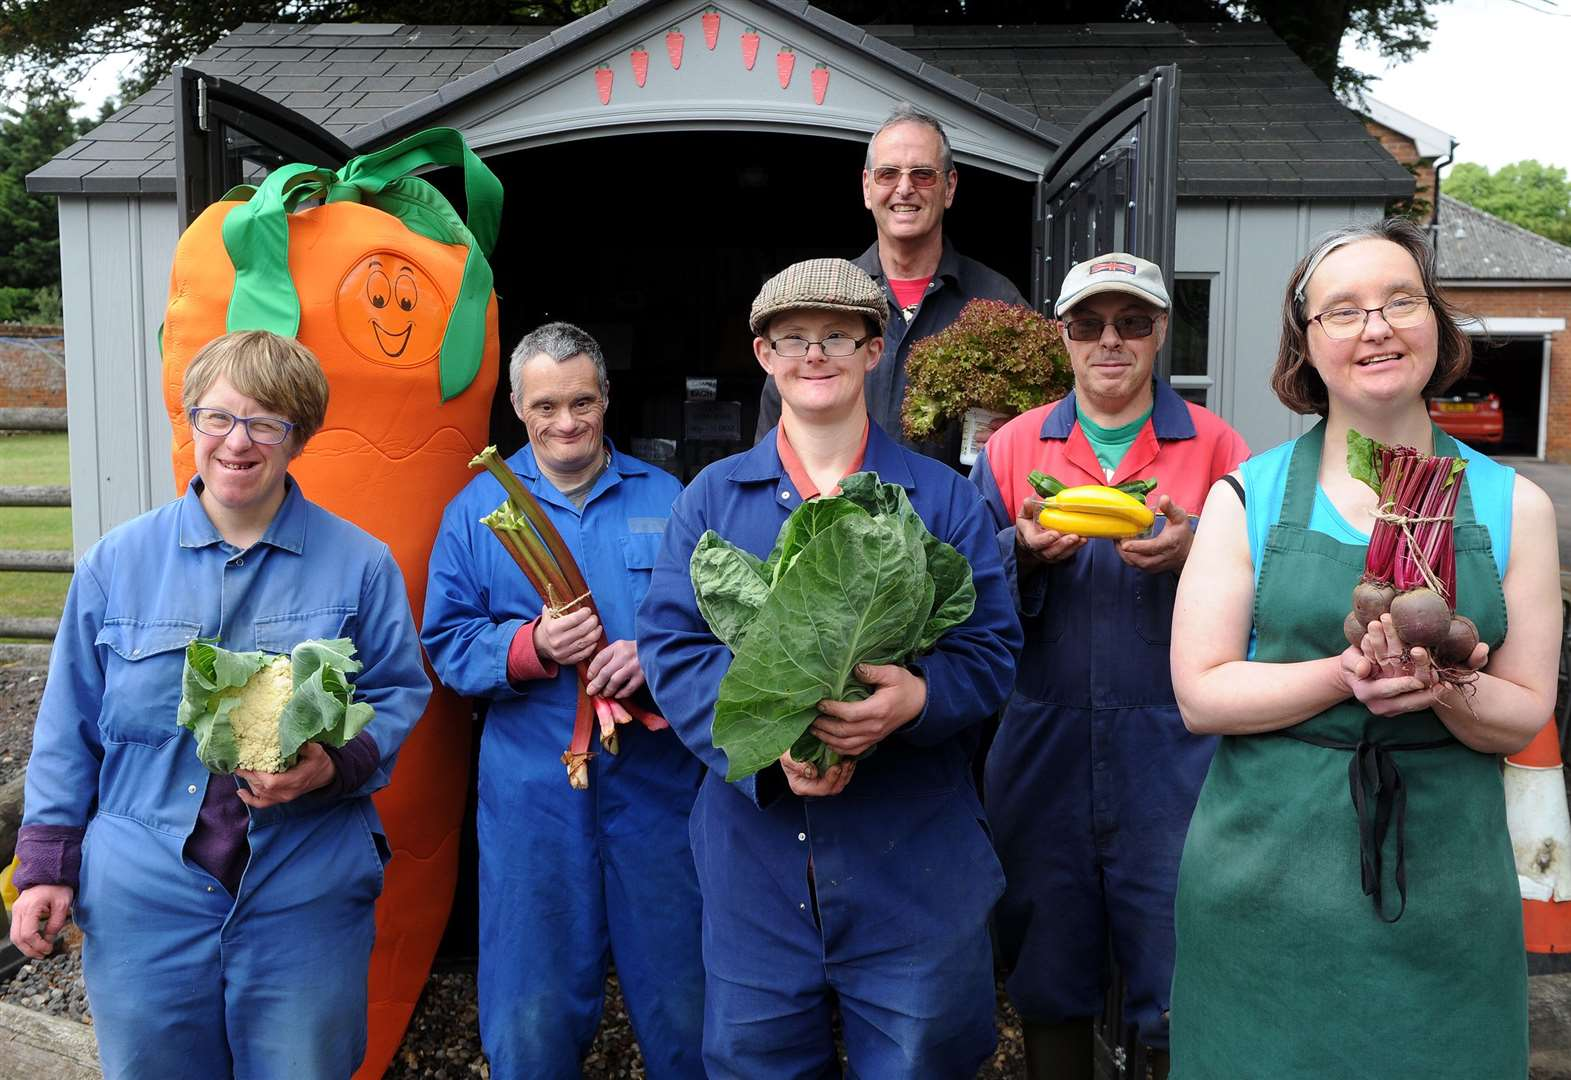 Weybread man combines growing vegetables with care work